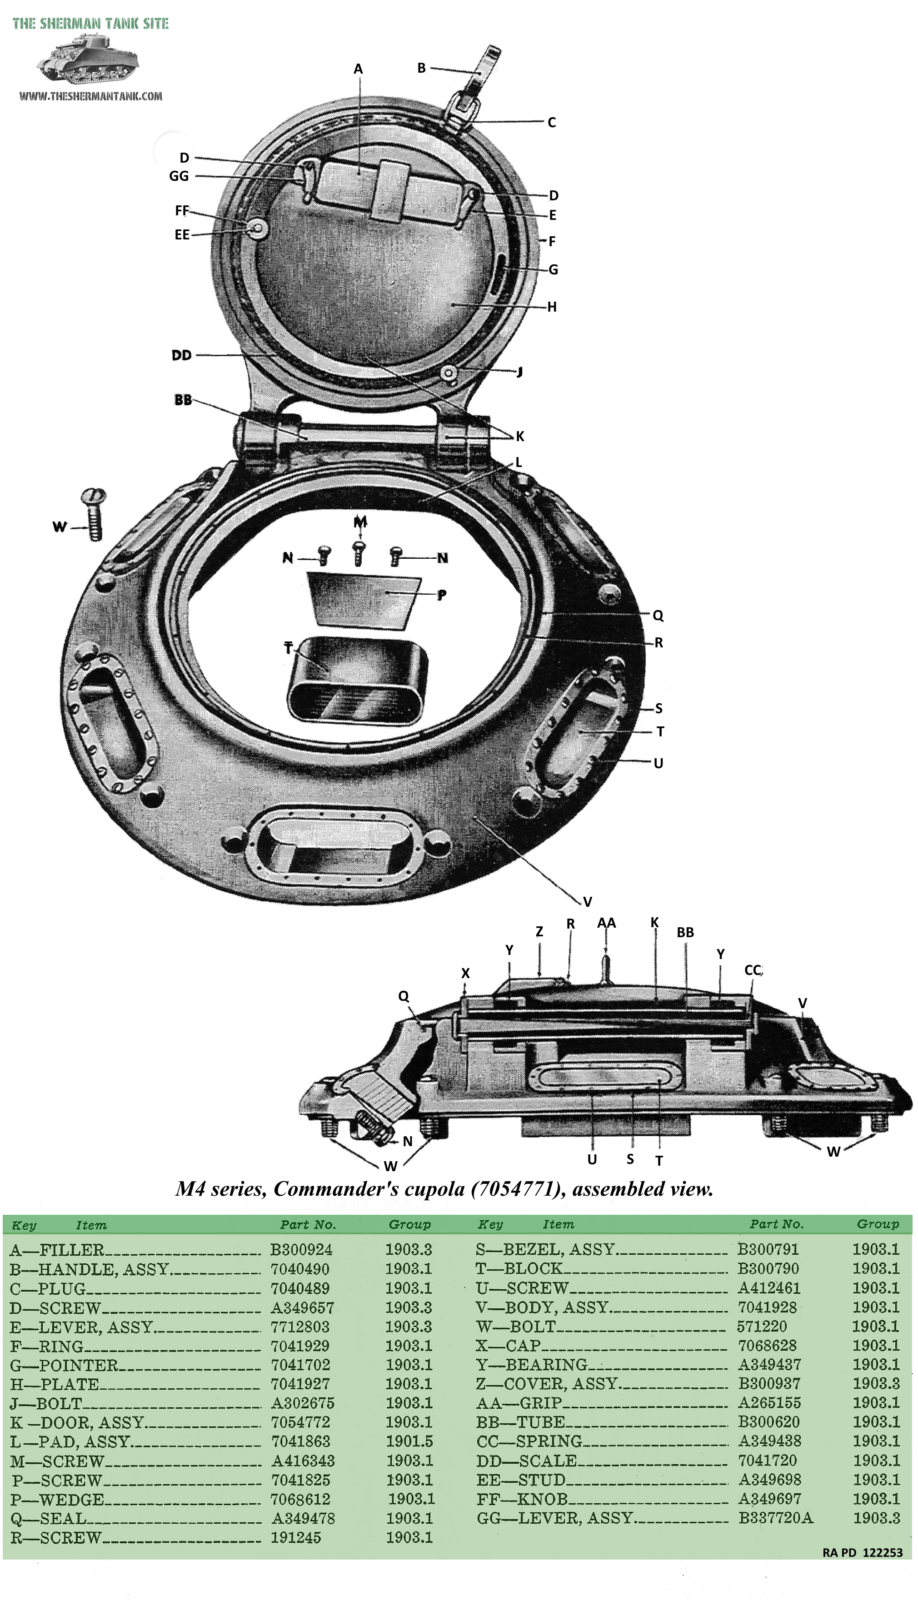 COMMANDERS-CUPOLA-7054771-ASSEMBLED-VIEW